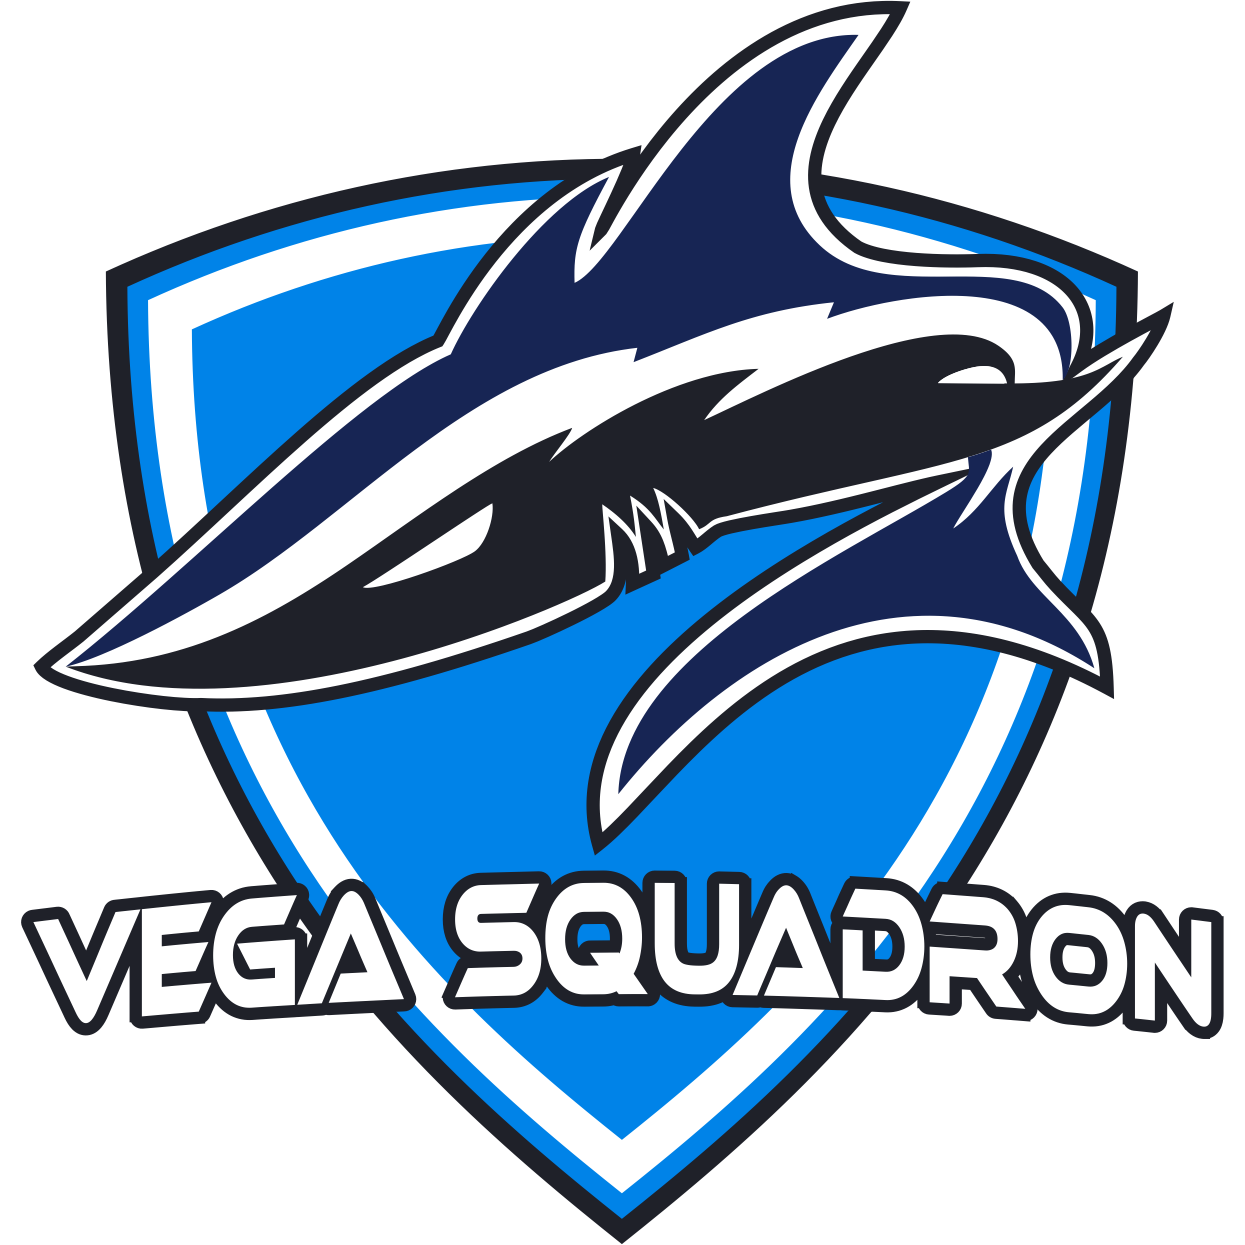 Vega Squadron League of Legends Team